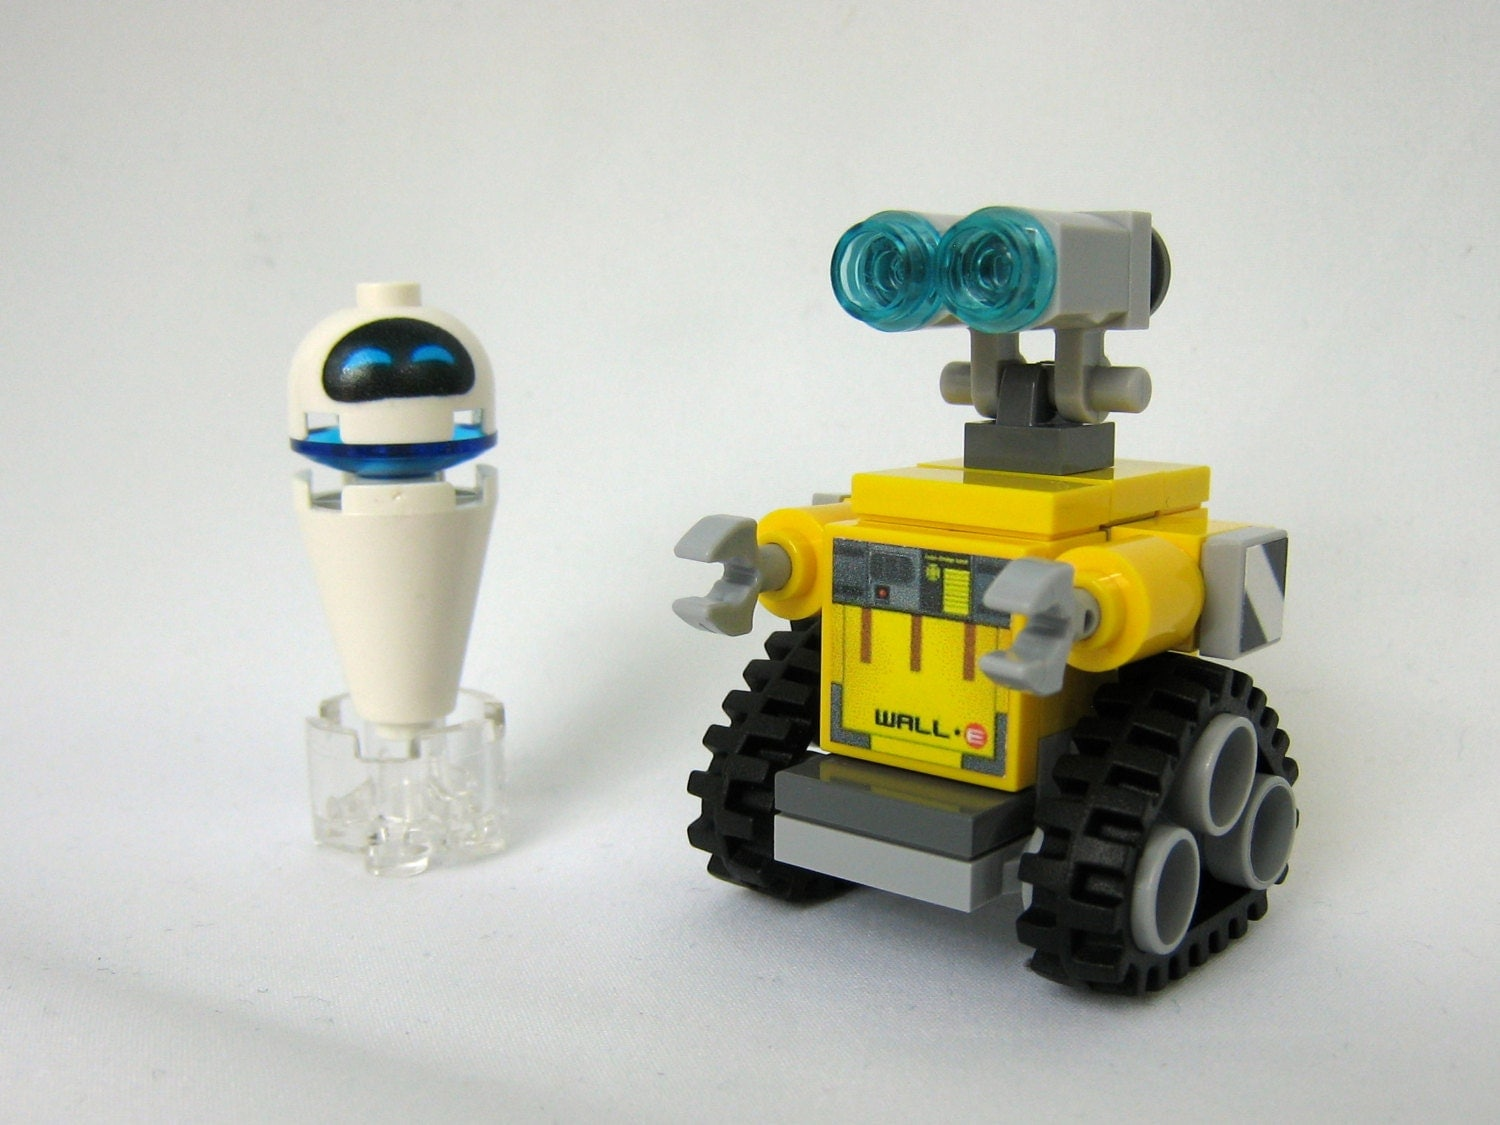 wall e robot levitating eve made from lego pieces. Black Bedroom Furniture Sets. Home Design Ideas